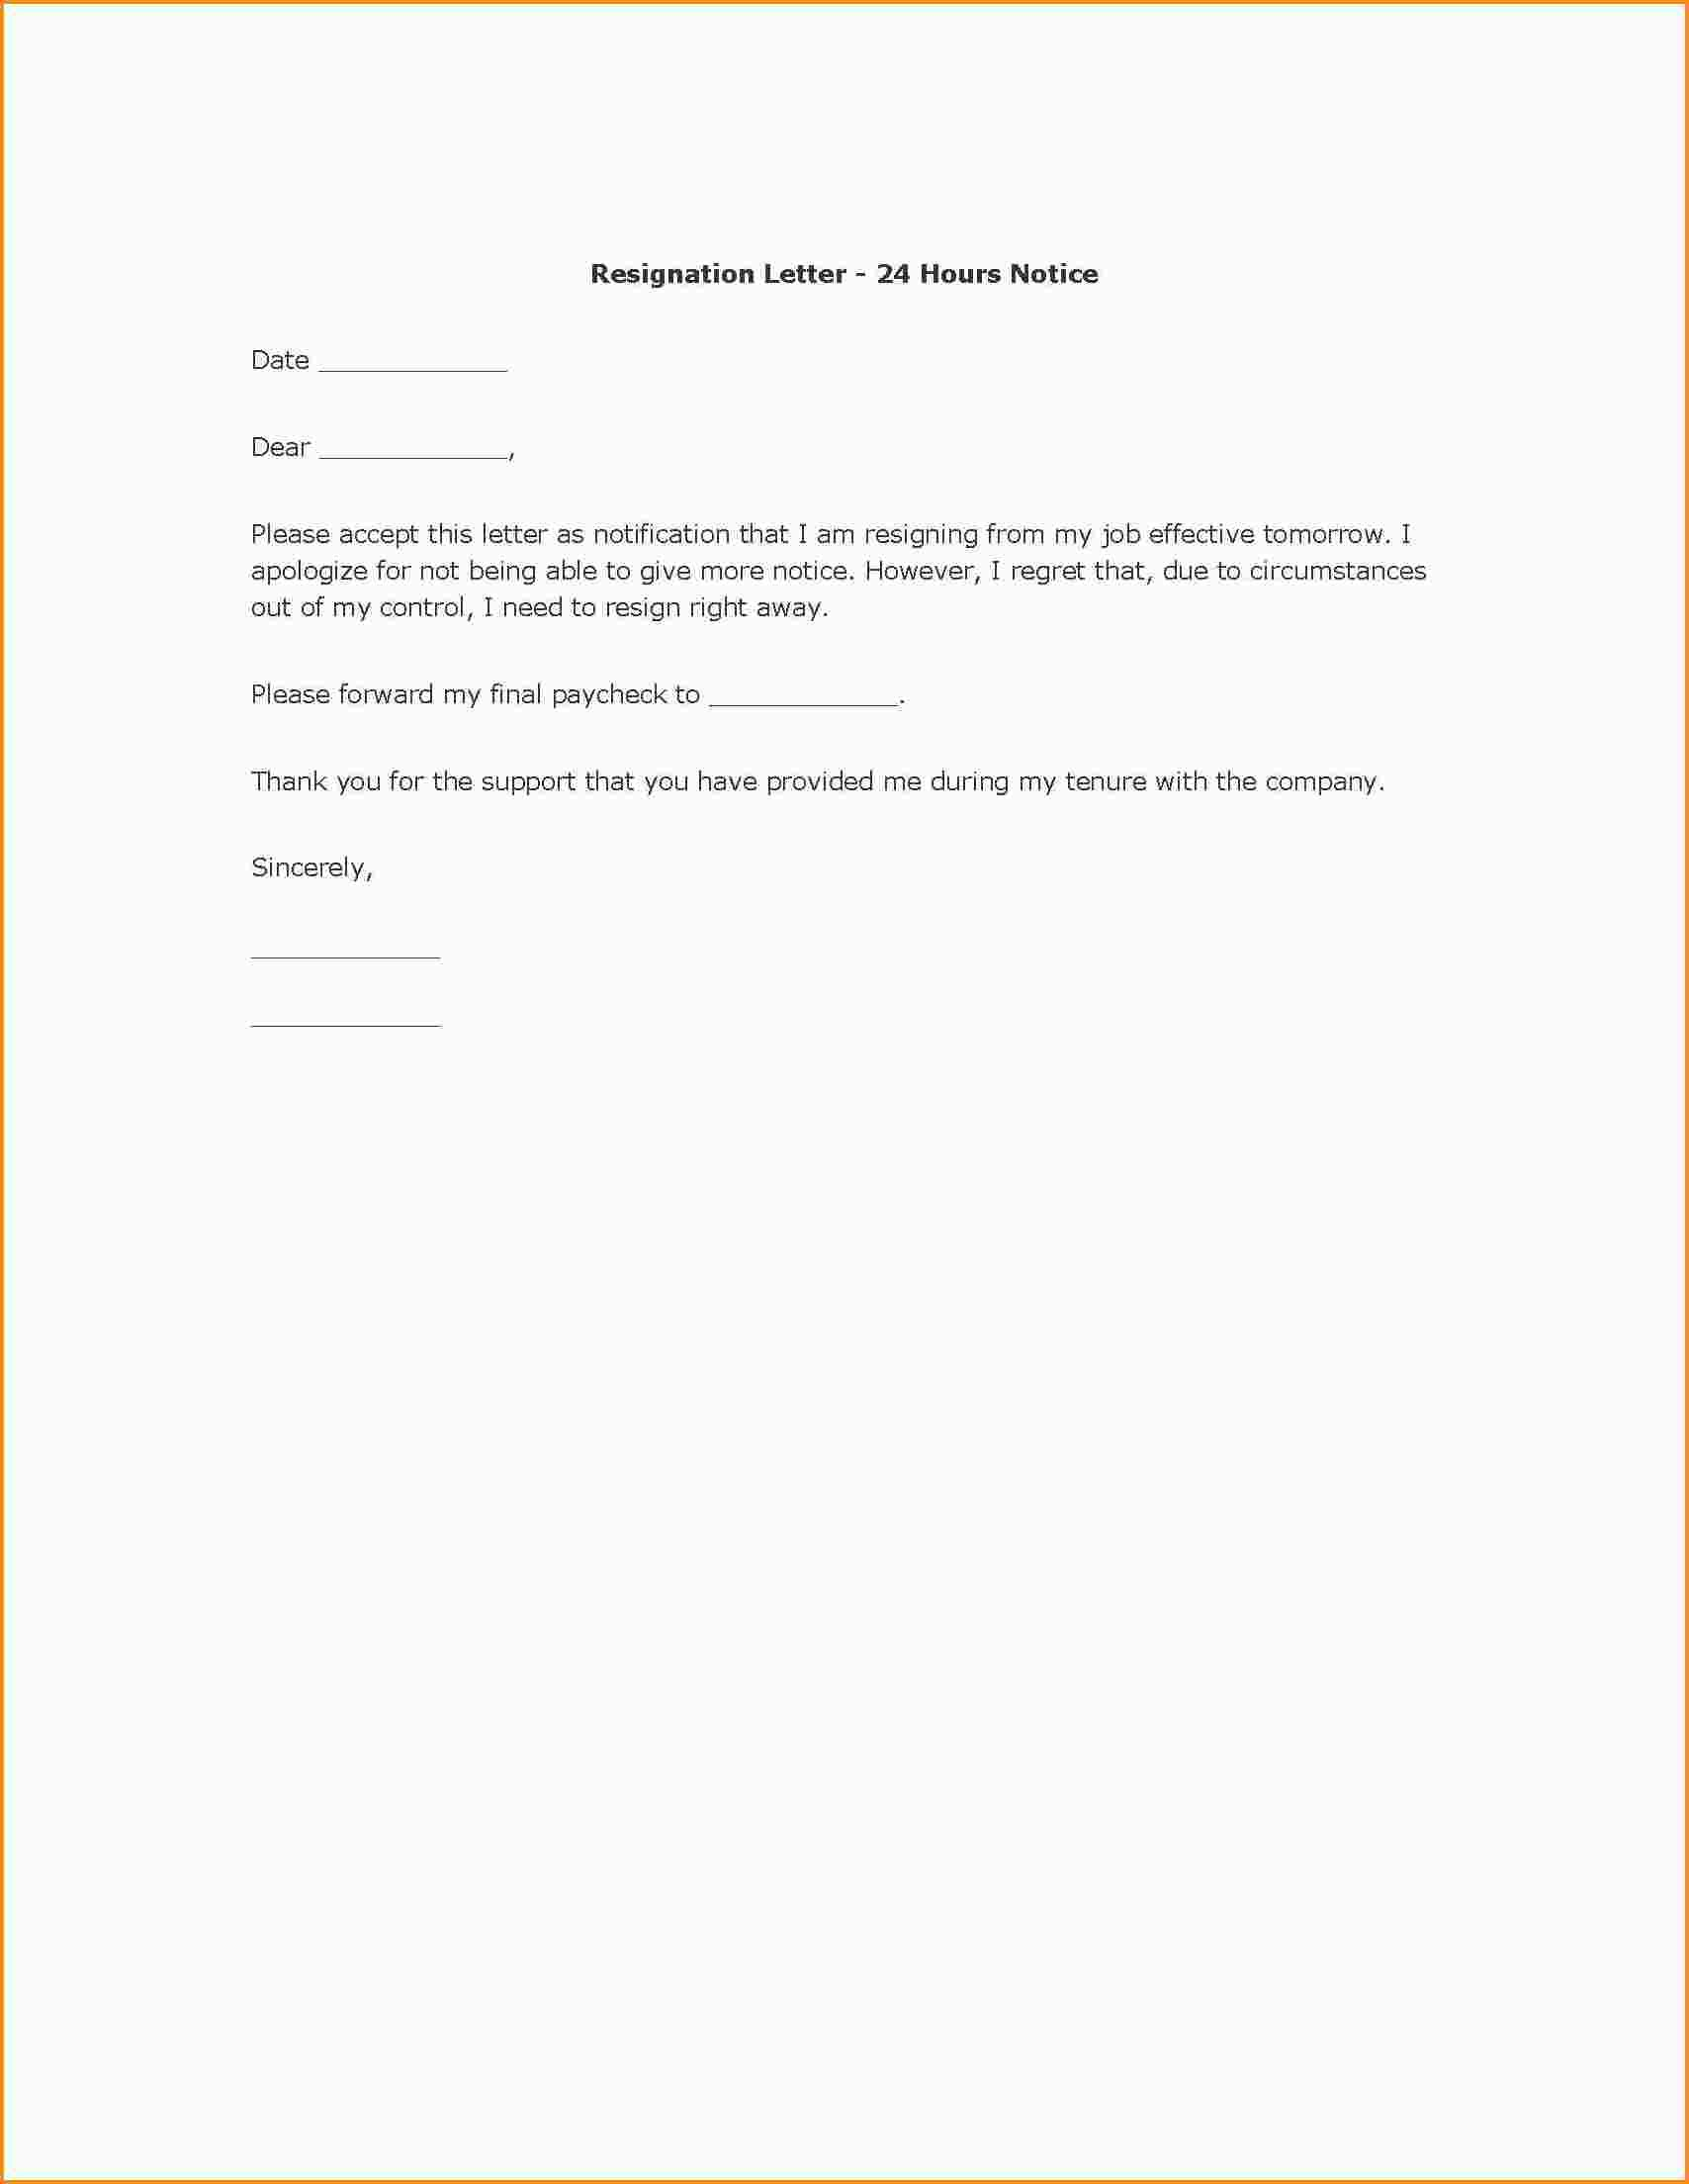 Template Examples Of Resignation Letters